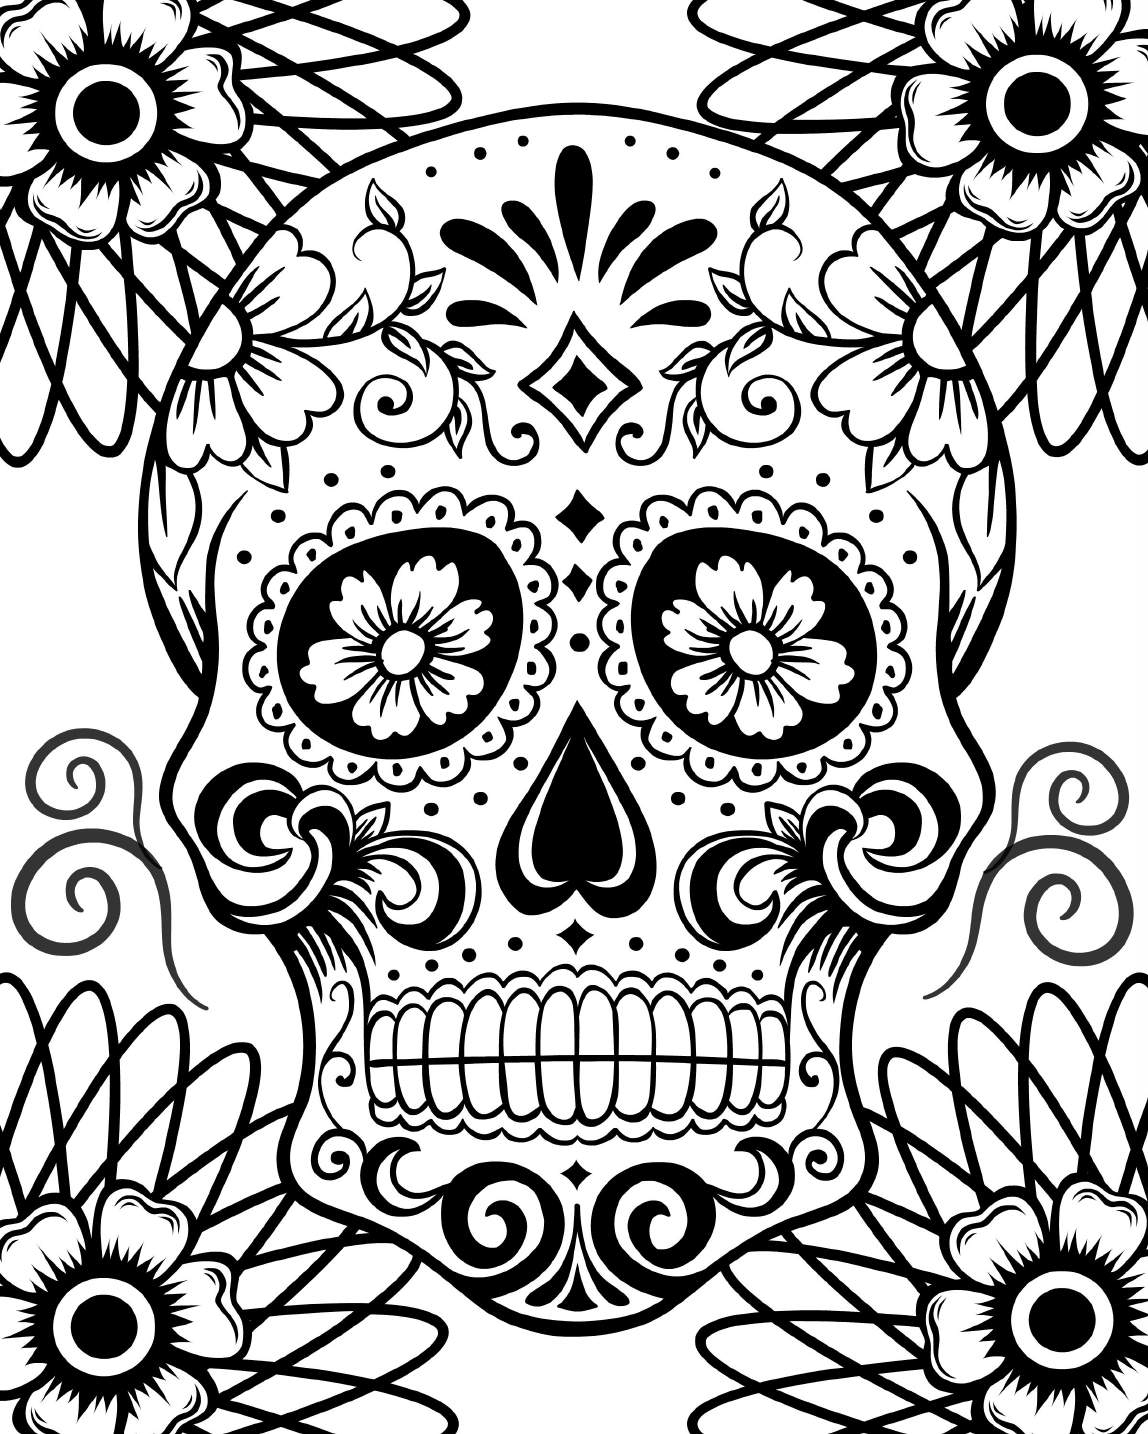 Day Of The Dead Skull Drawing At Getdrawings Com Free For Personal